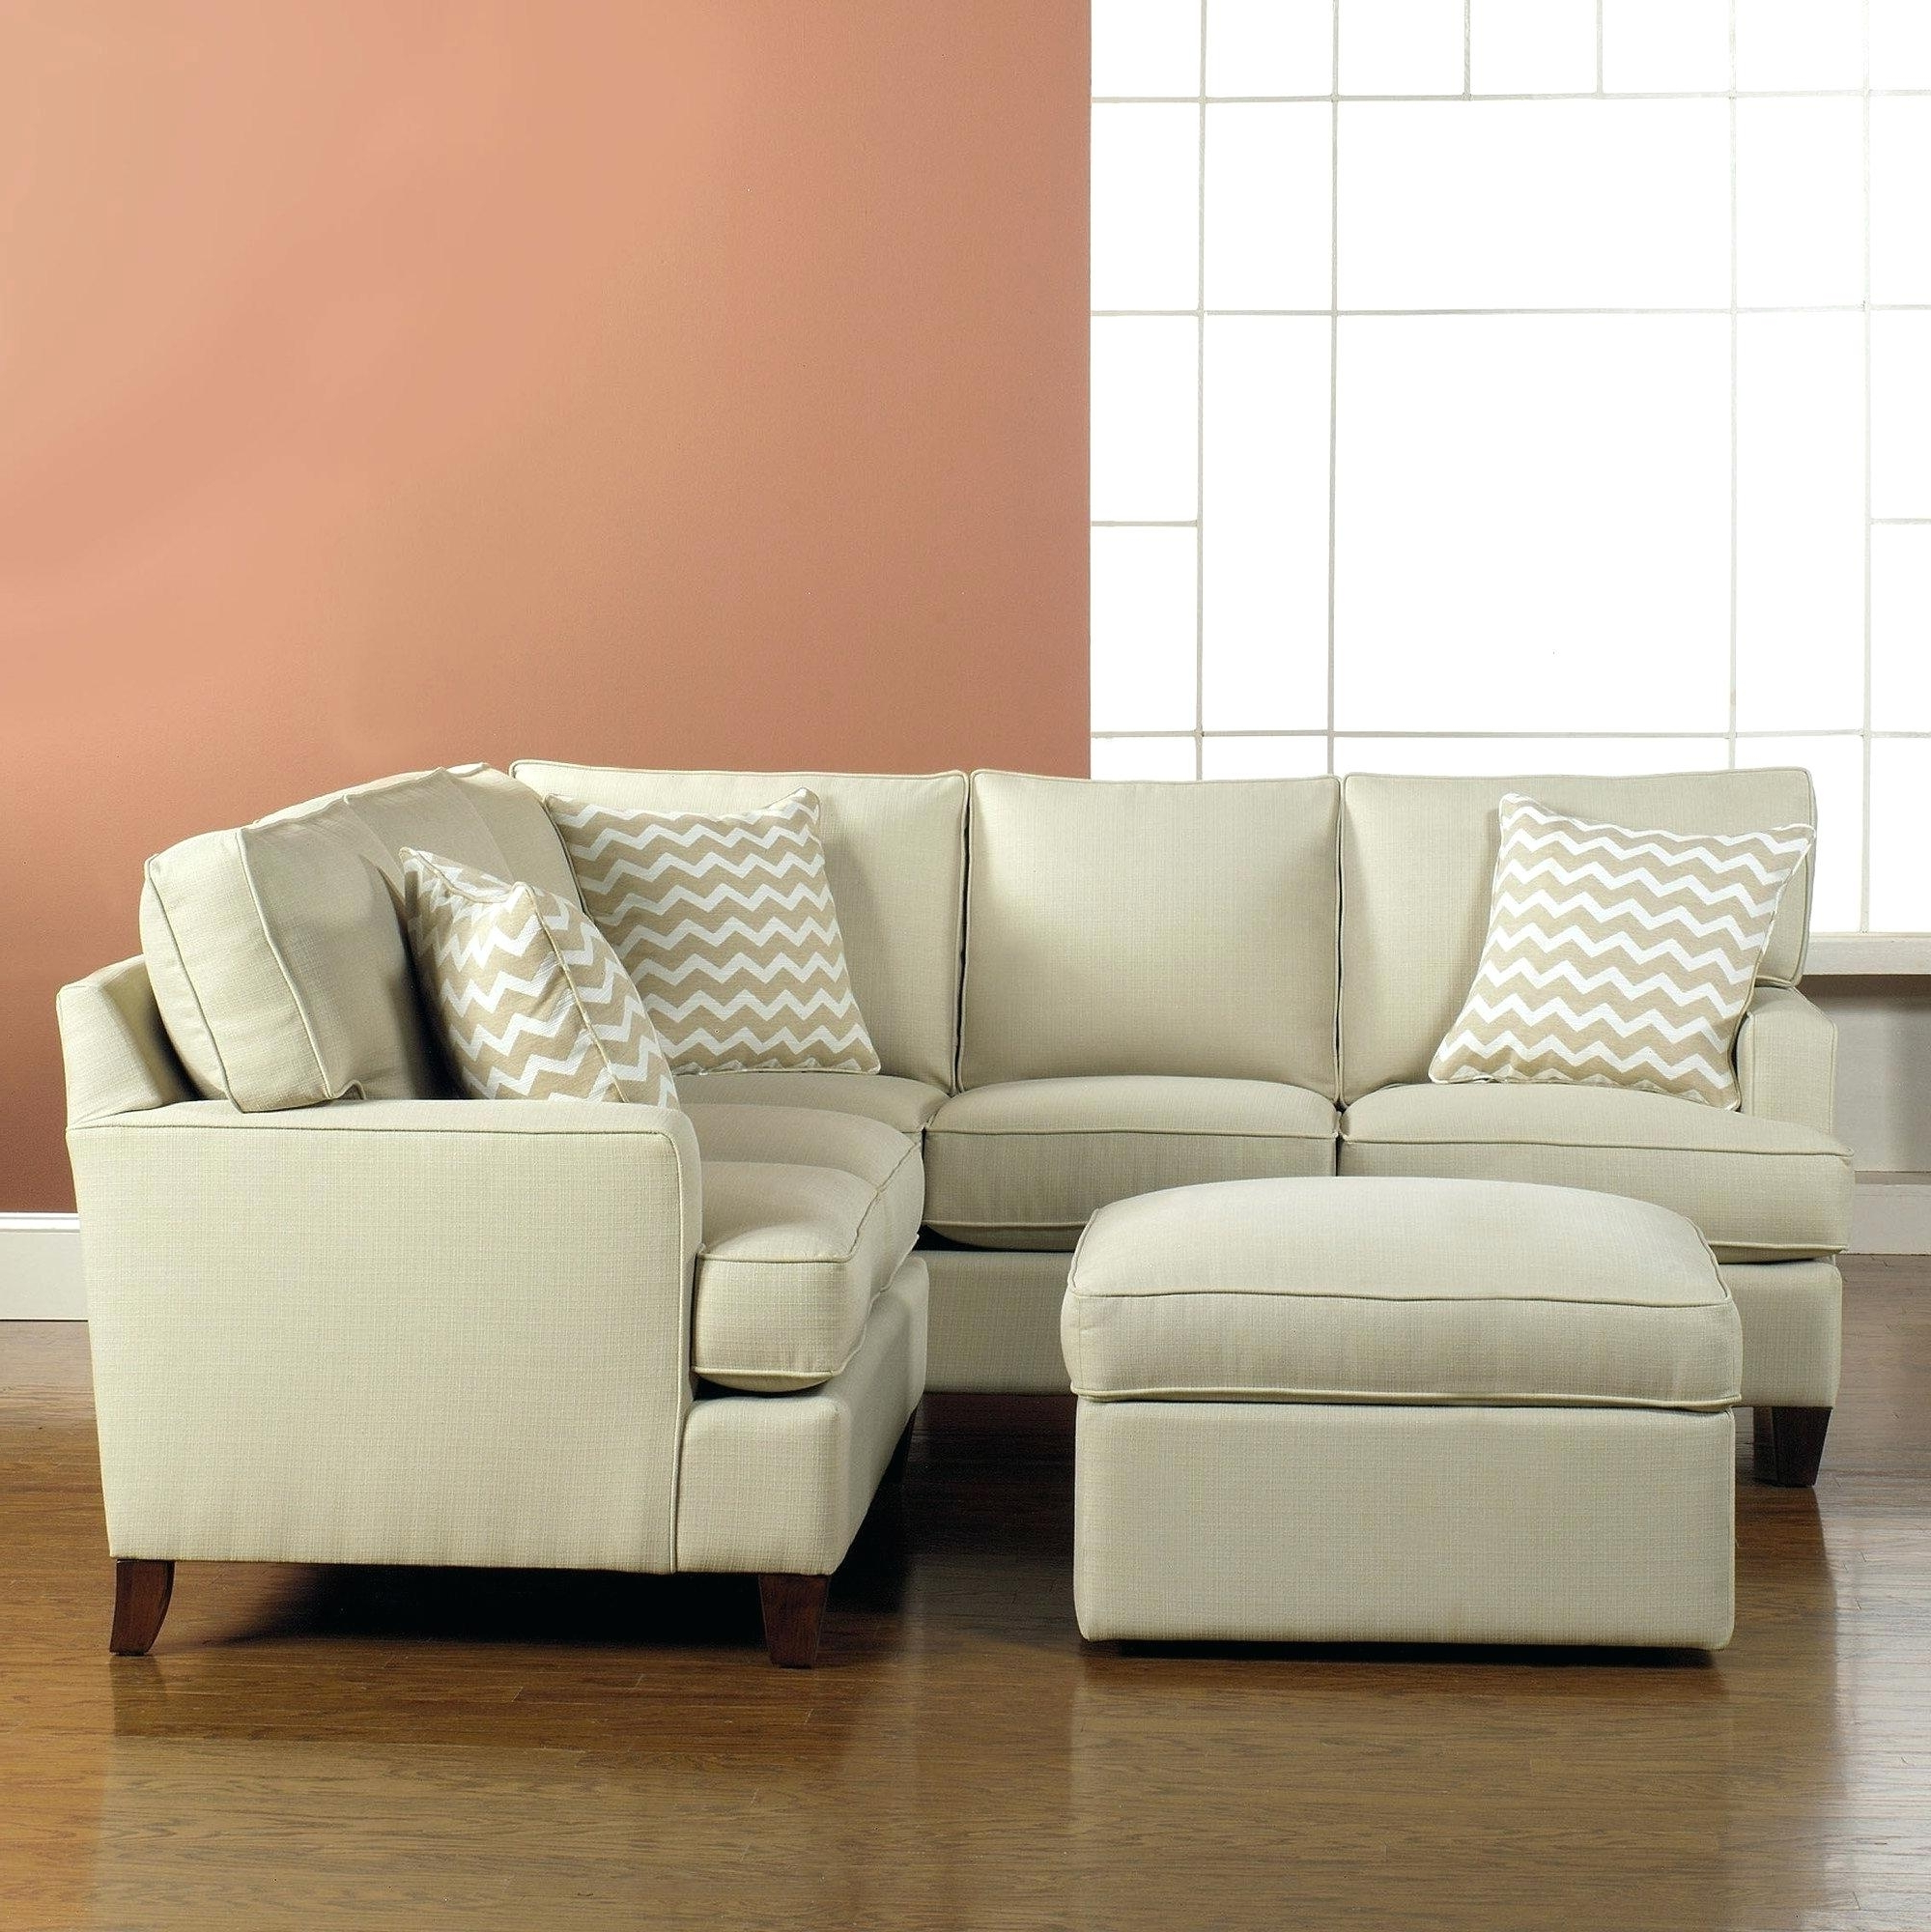 Fashionable Canada Sectional Sofas For Small Spaces With Regard To Sectionals Sofa Sectional Sofas For Small Spaces Canada Lane With (View 2 of 20)